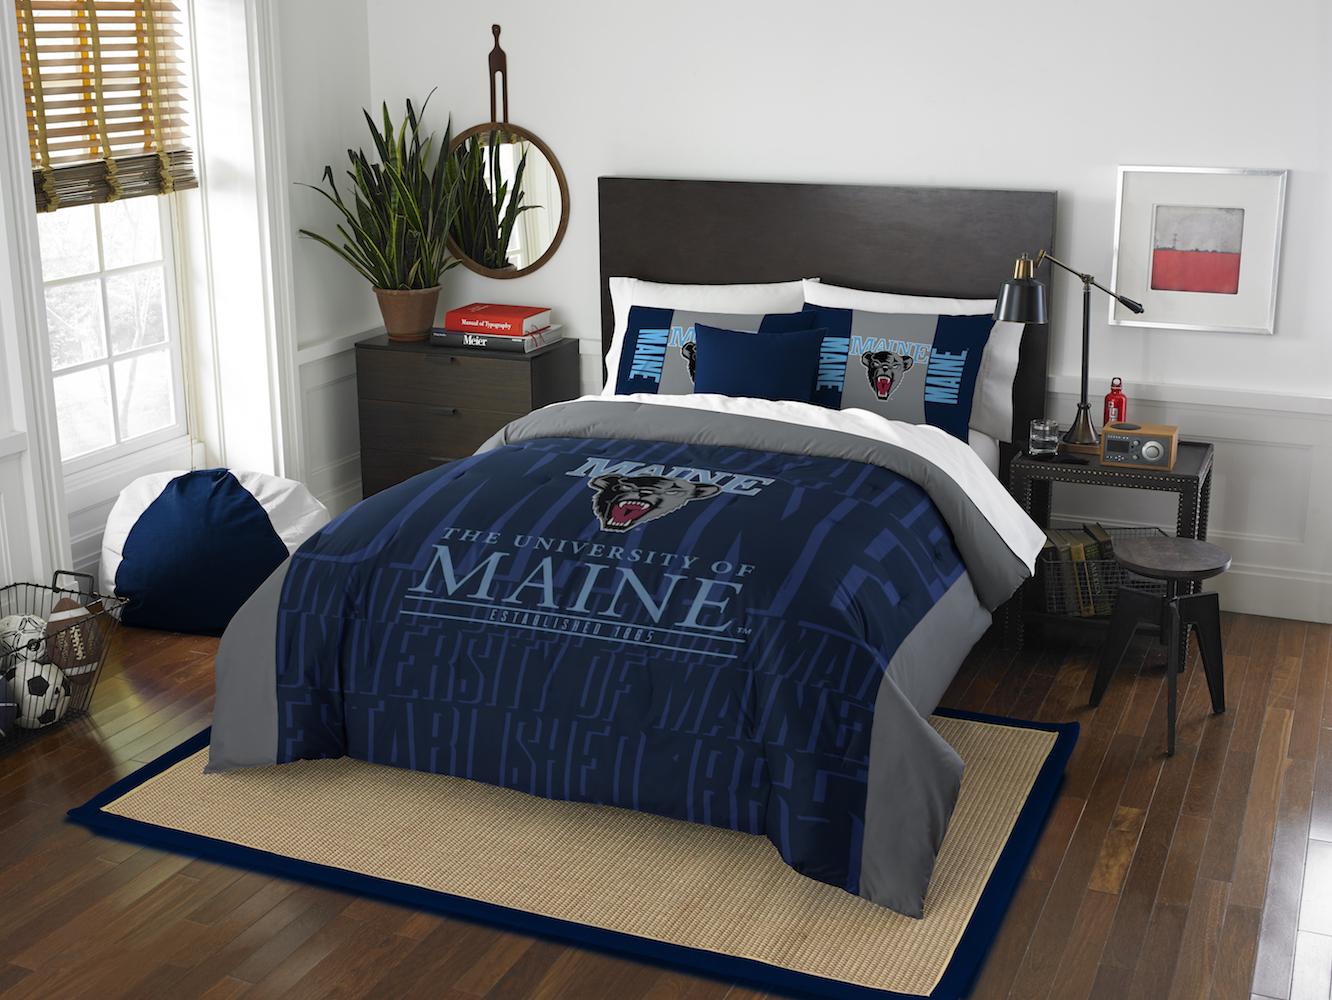 Maine Black Bears QUEEN/FULL size Comforter and 2 Shams